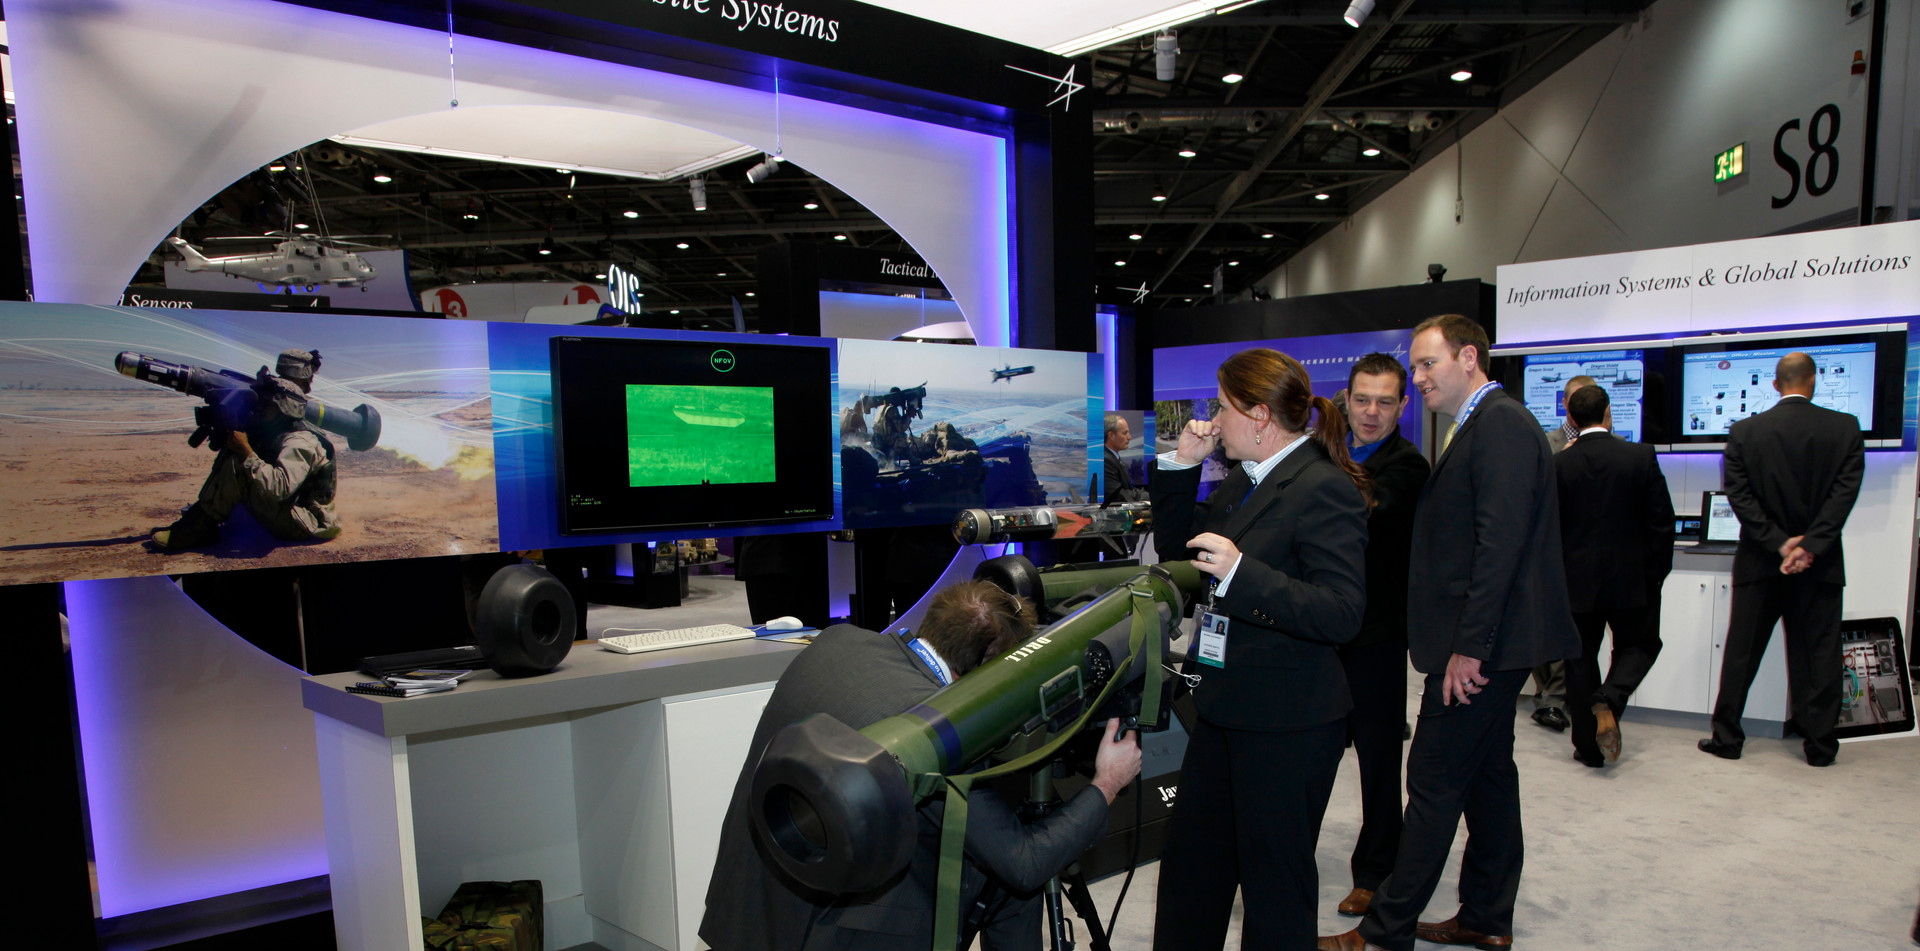 Visitors and traders at an arms fair in London, UK